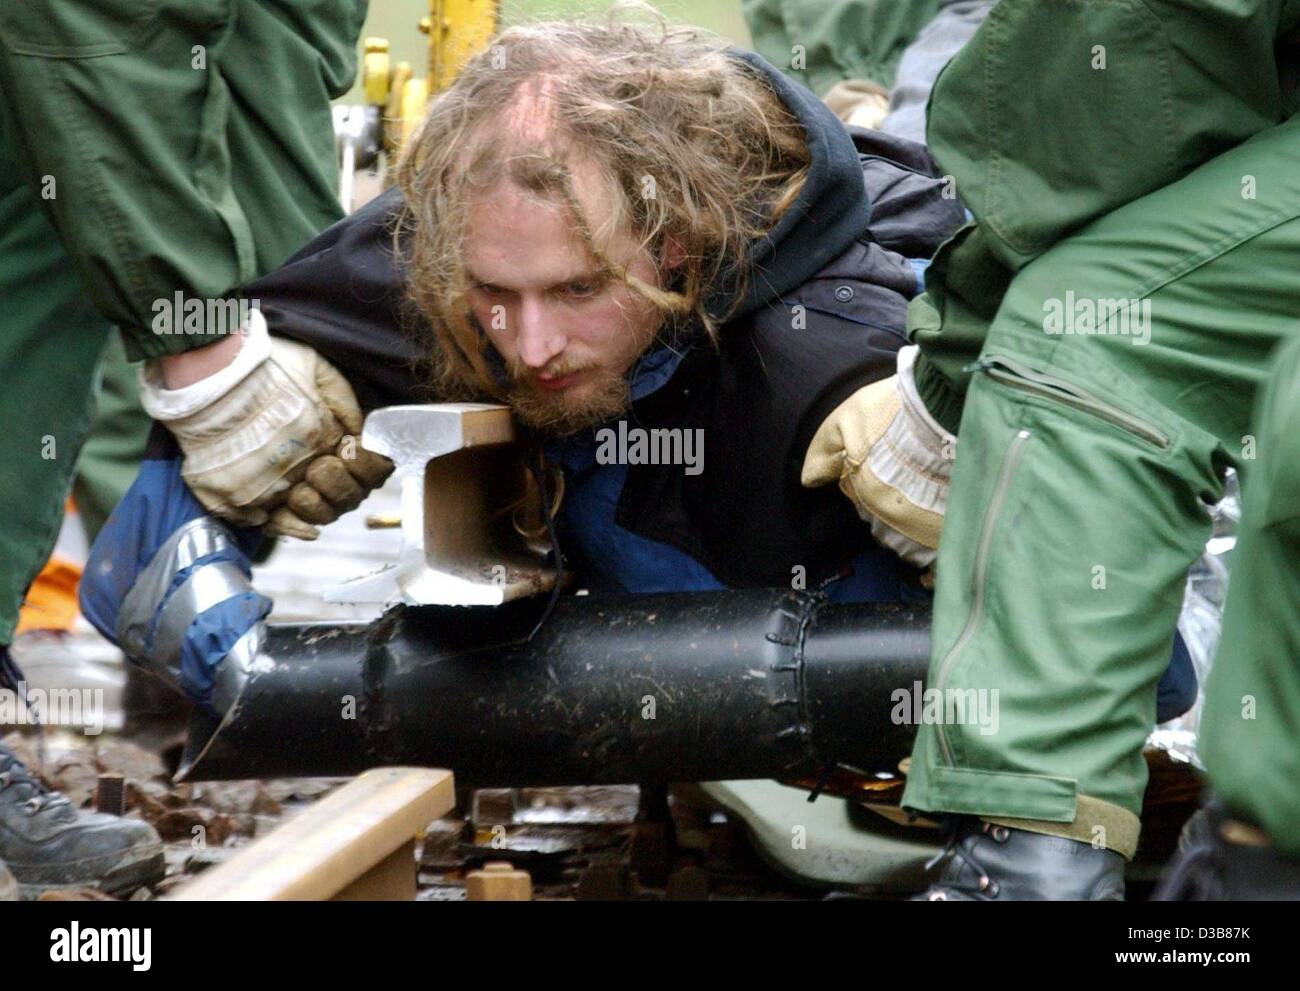 (dpa) - Policemen remove a protestor against the current nuclear waste transport who has chained himself to a steel - Stock Image